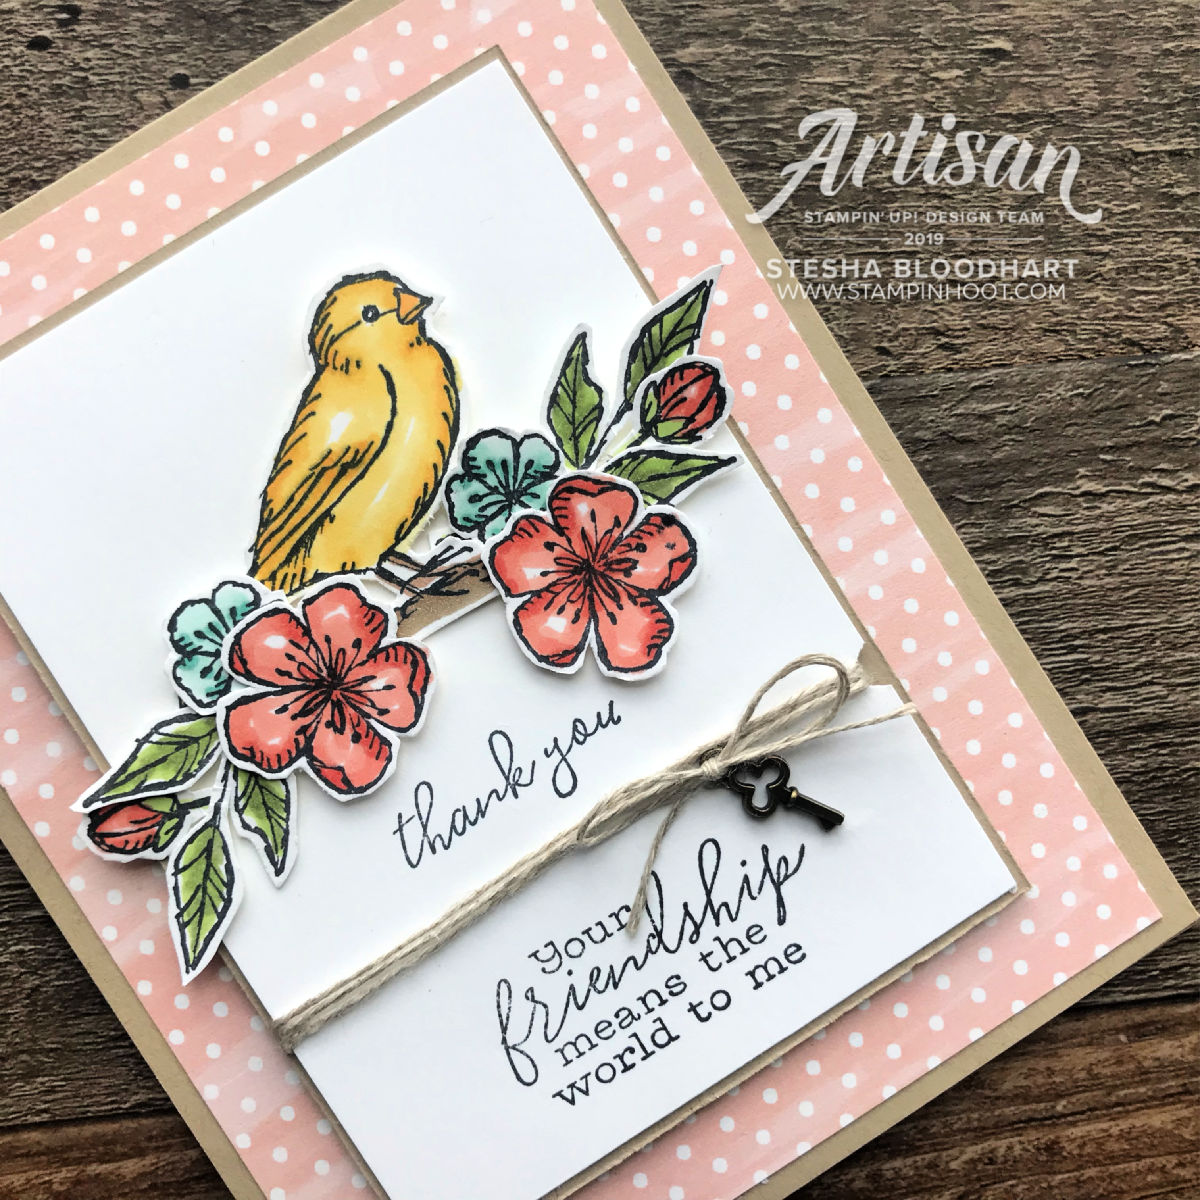 Sneak Peek Free As A Bird Stamp Set by Stampin' Up! Thank You Card by Stesha Bloodhart, Stampin' Hoot! #gdp188